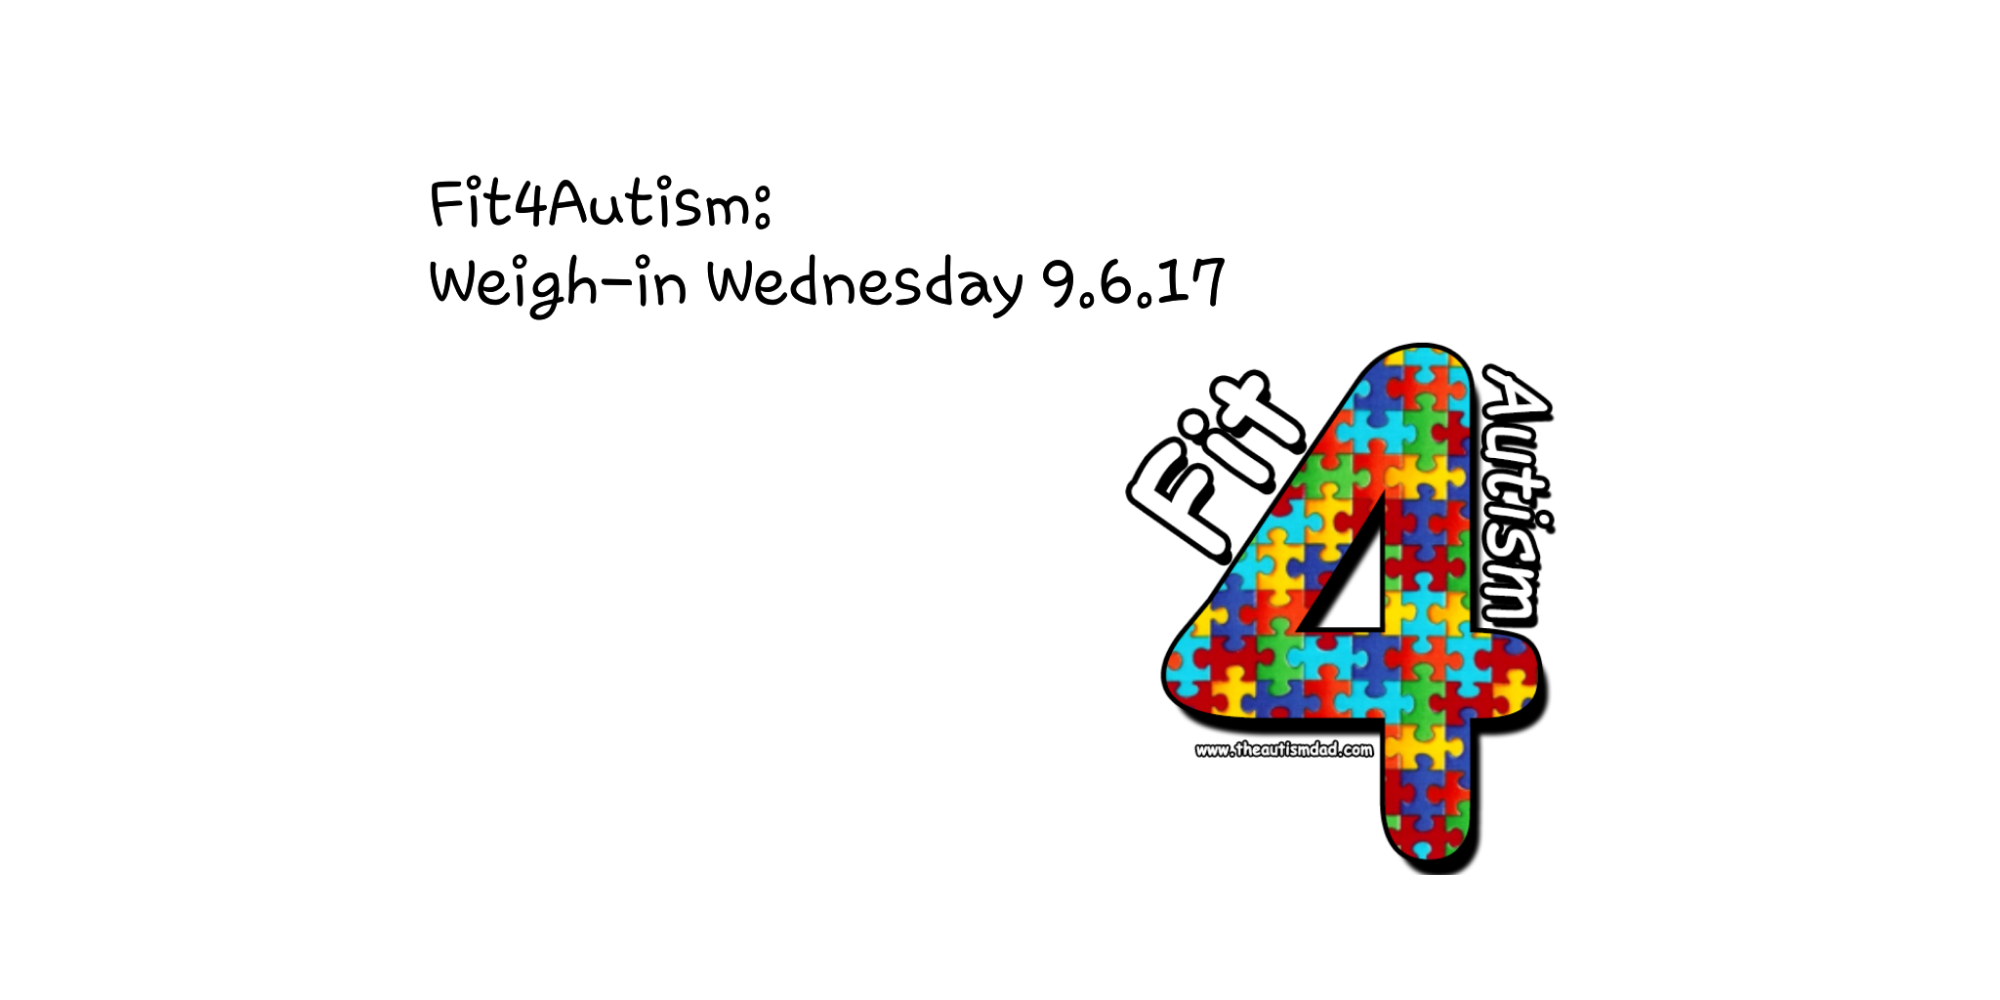 Fit4Autism: Weigh-in Wednesday 9.6.17